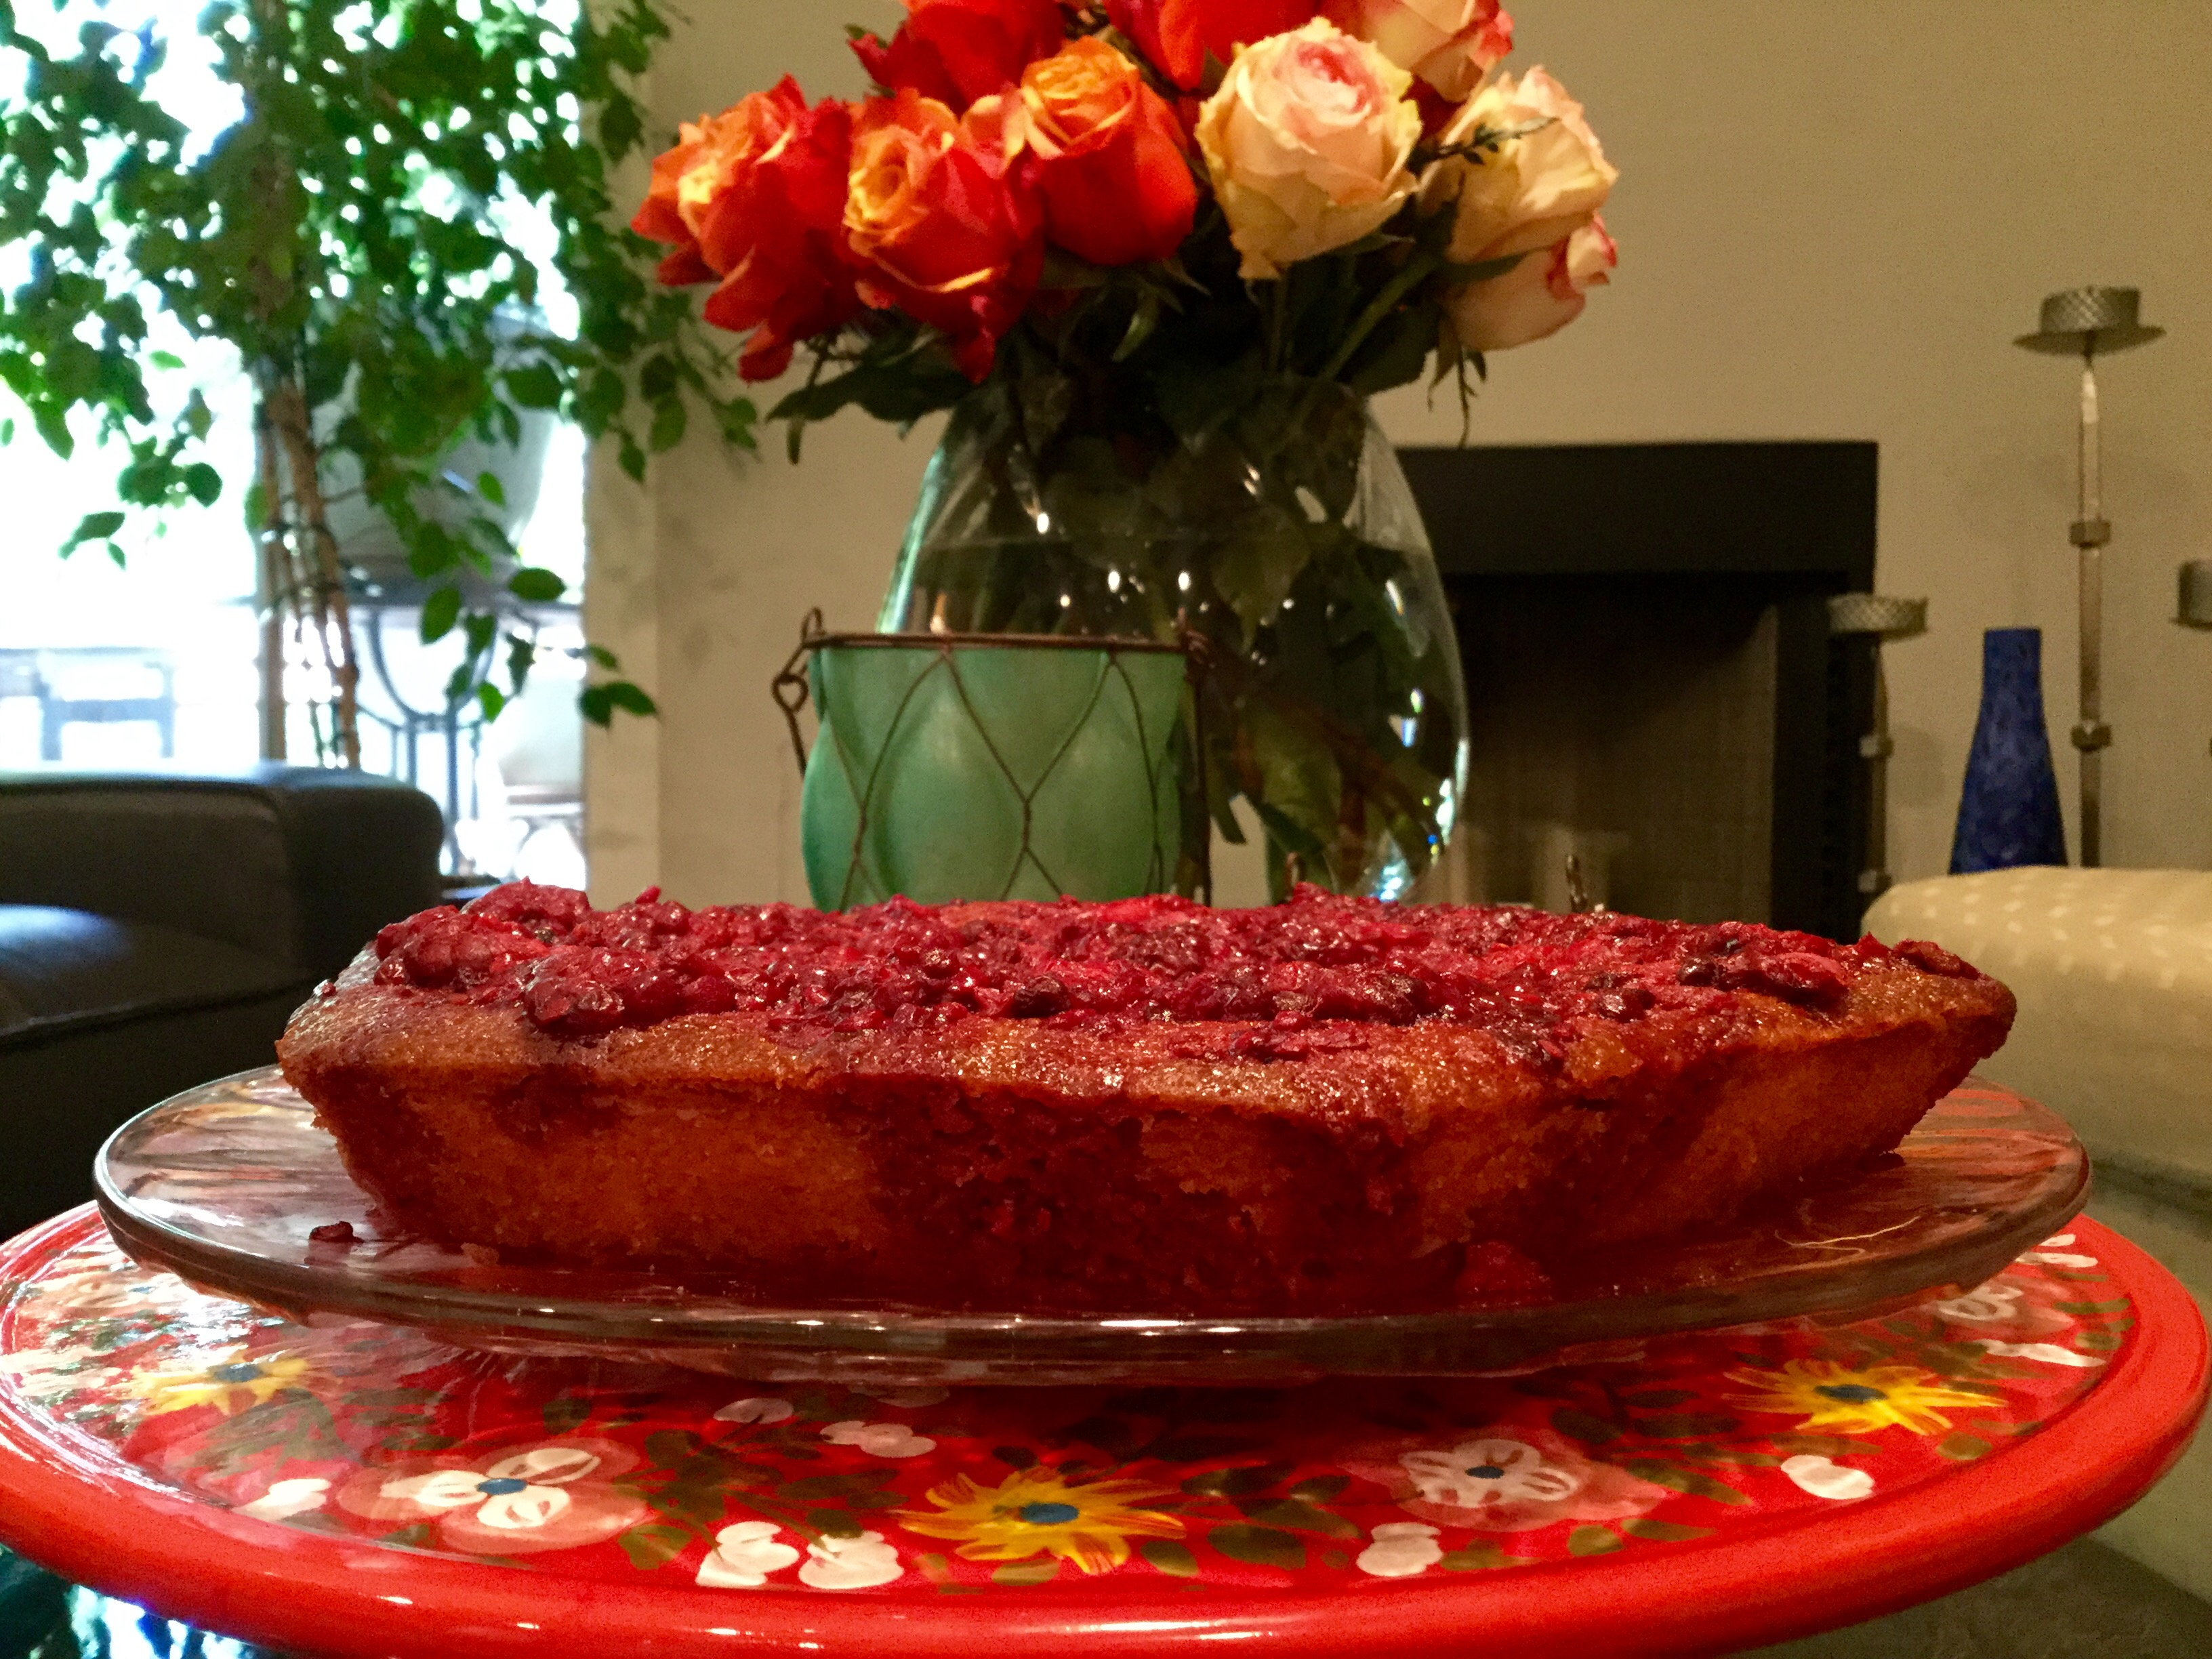 My mom Cristiana Maria made my favorite: lemon cake with fresh raspberries dripping on the sides. Lemons and berries from my parents' home.